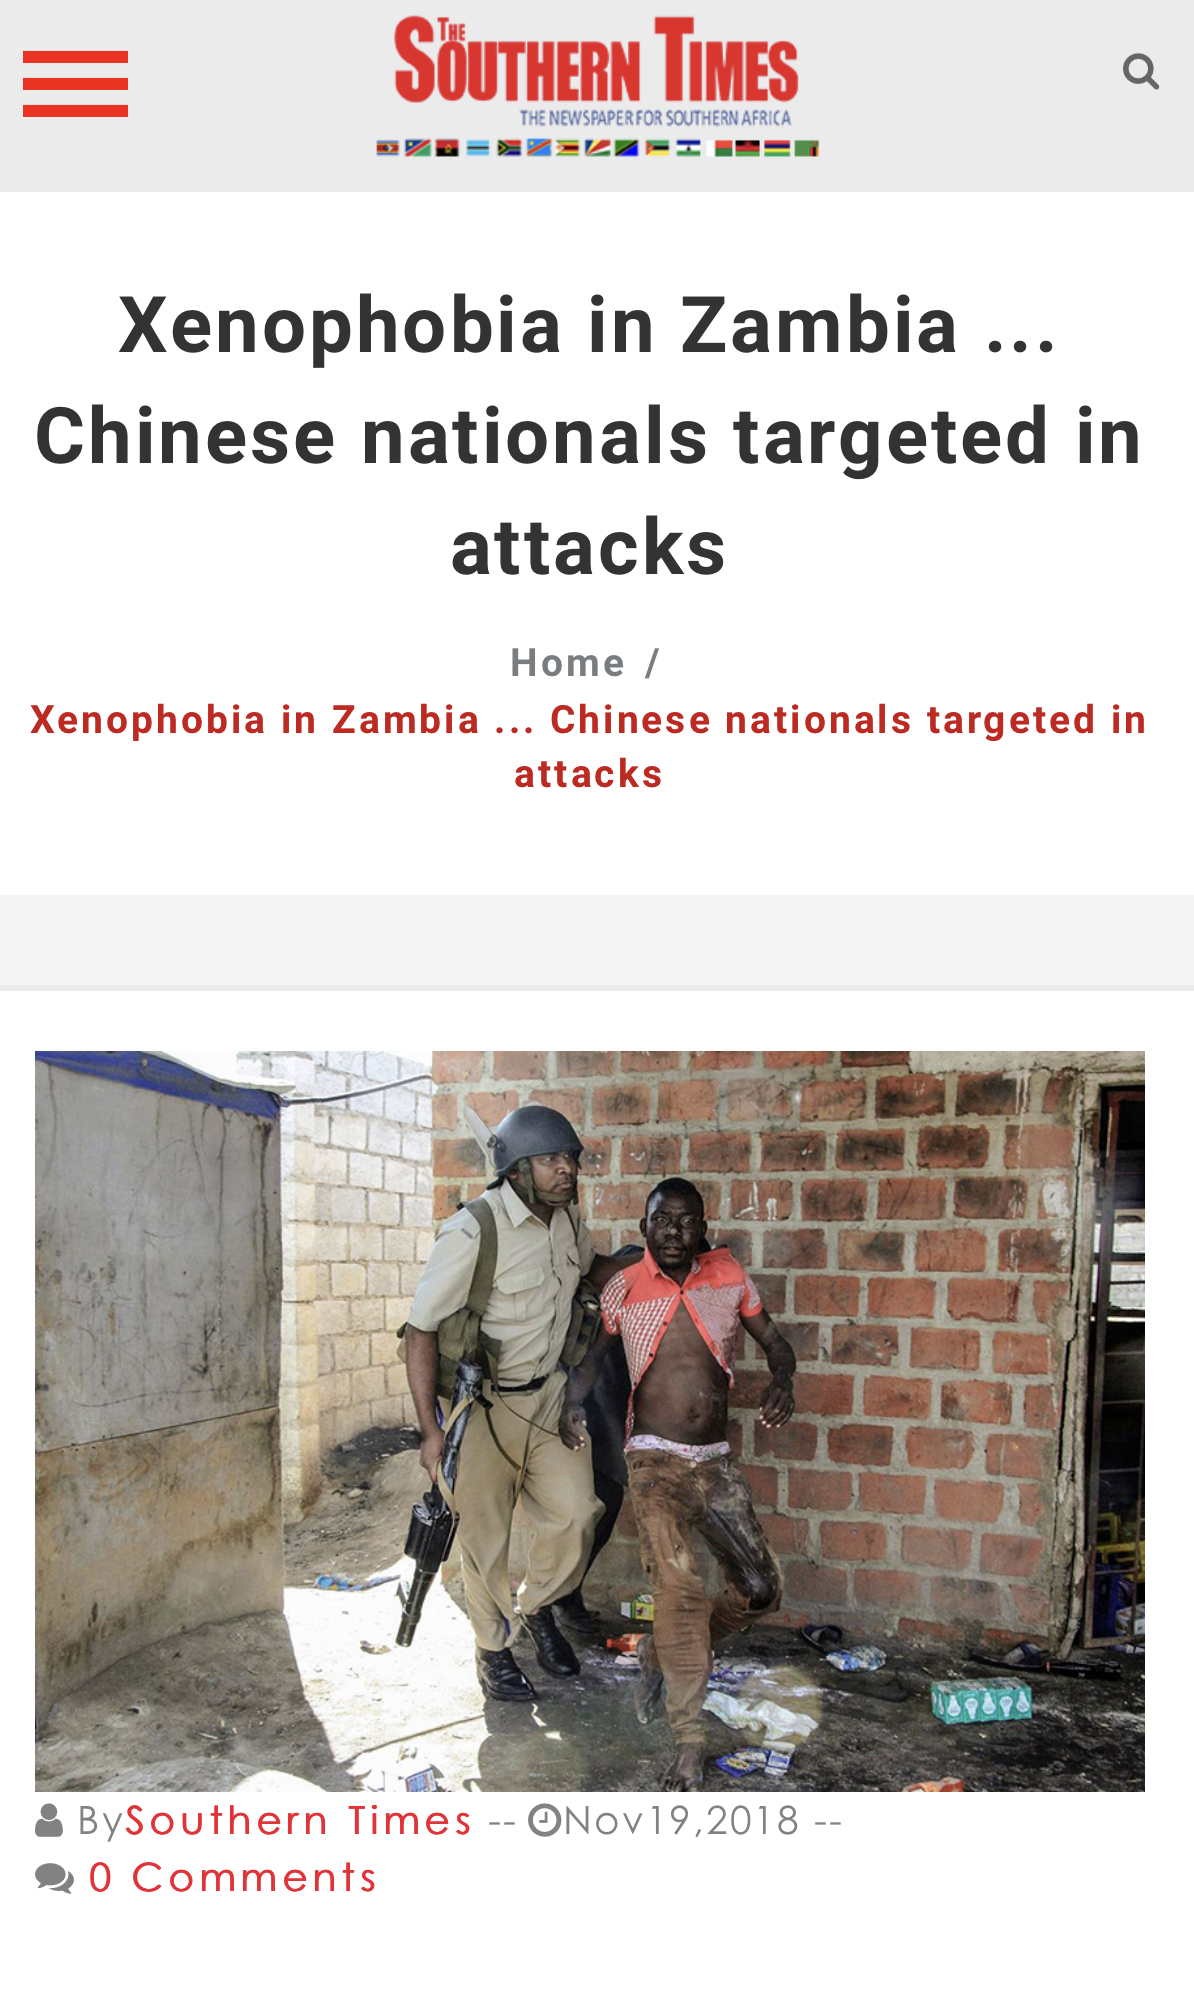 World reads about xenophobia in Zambia